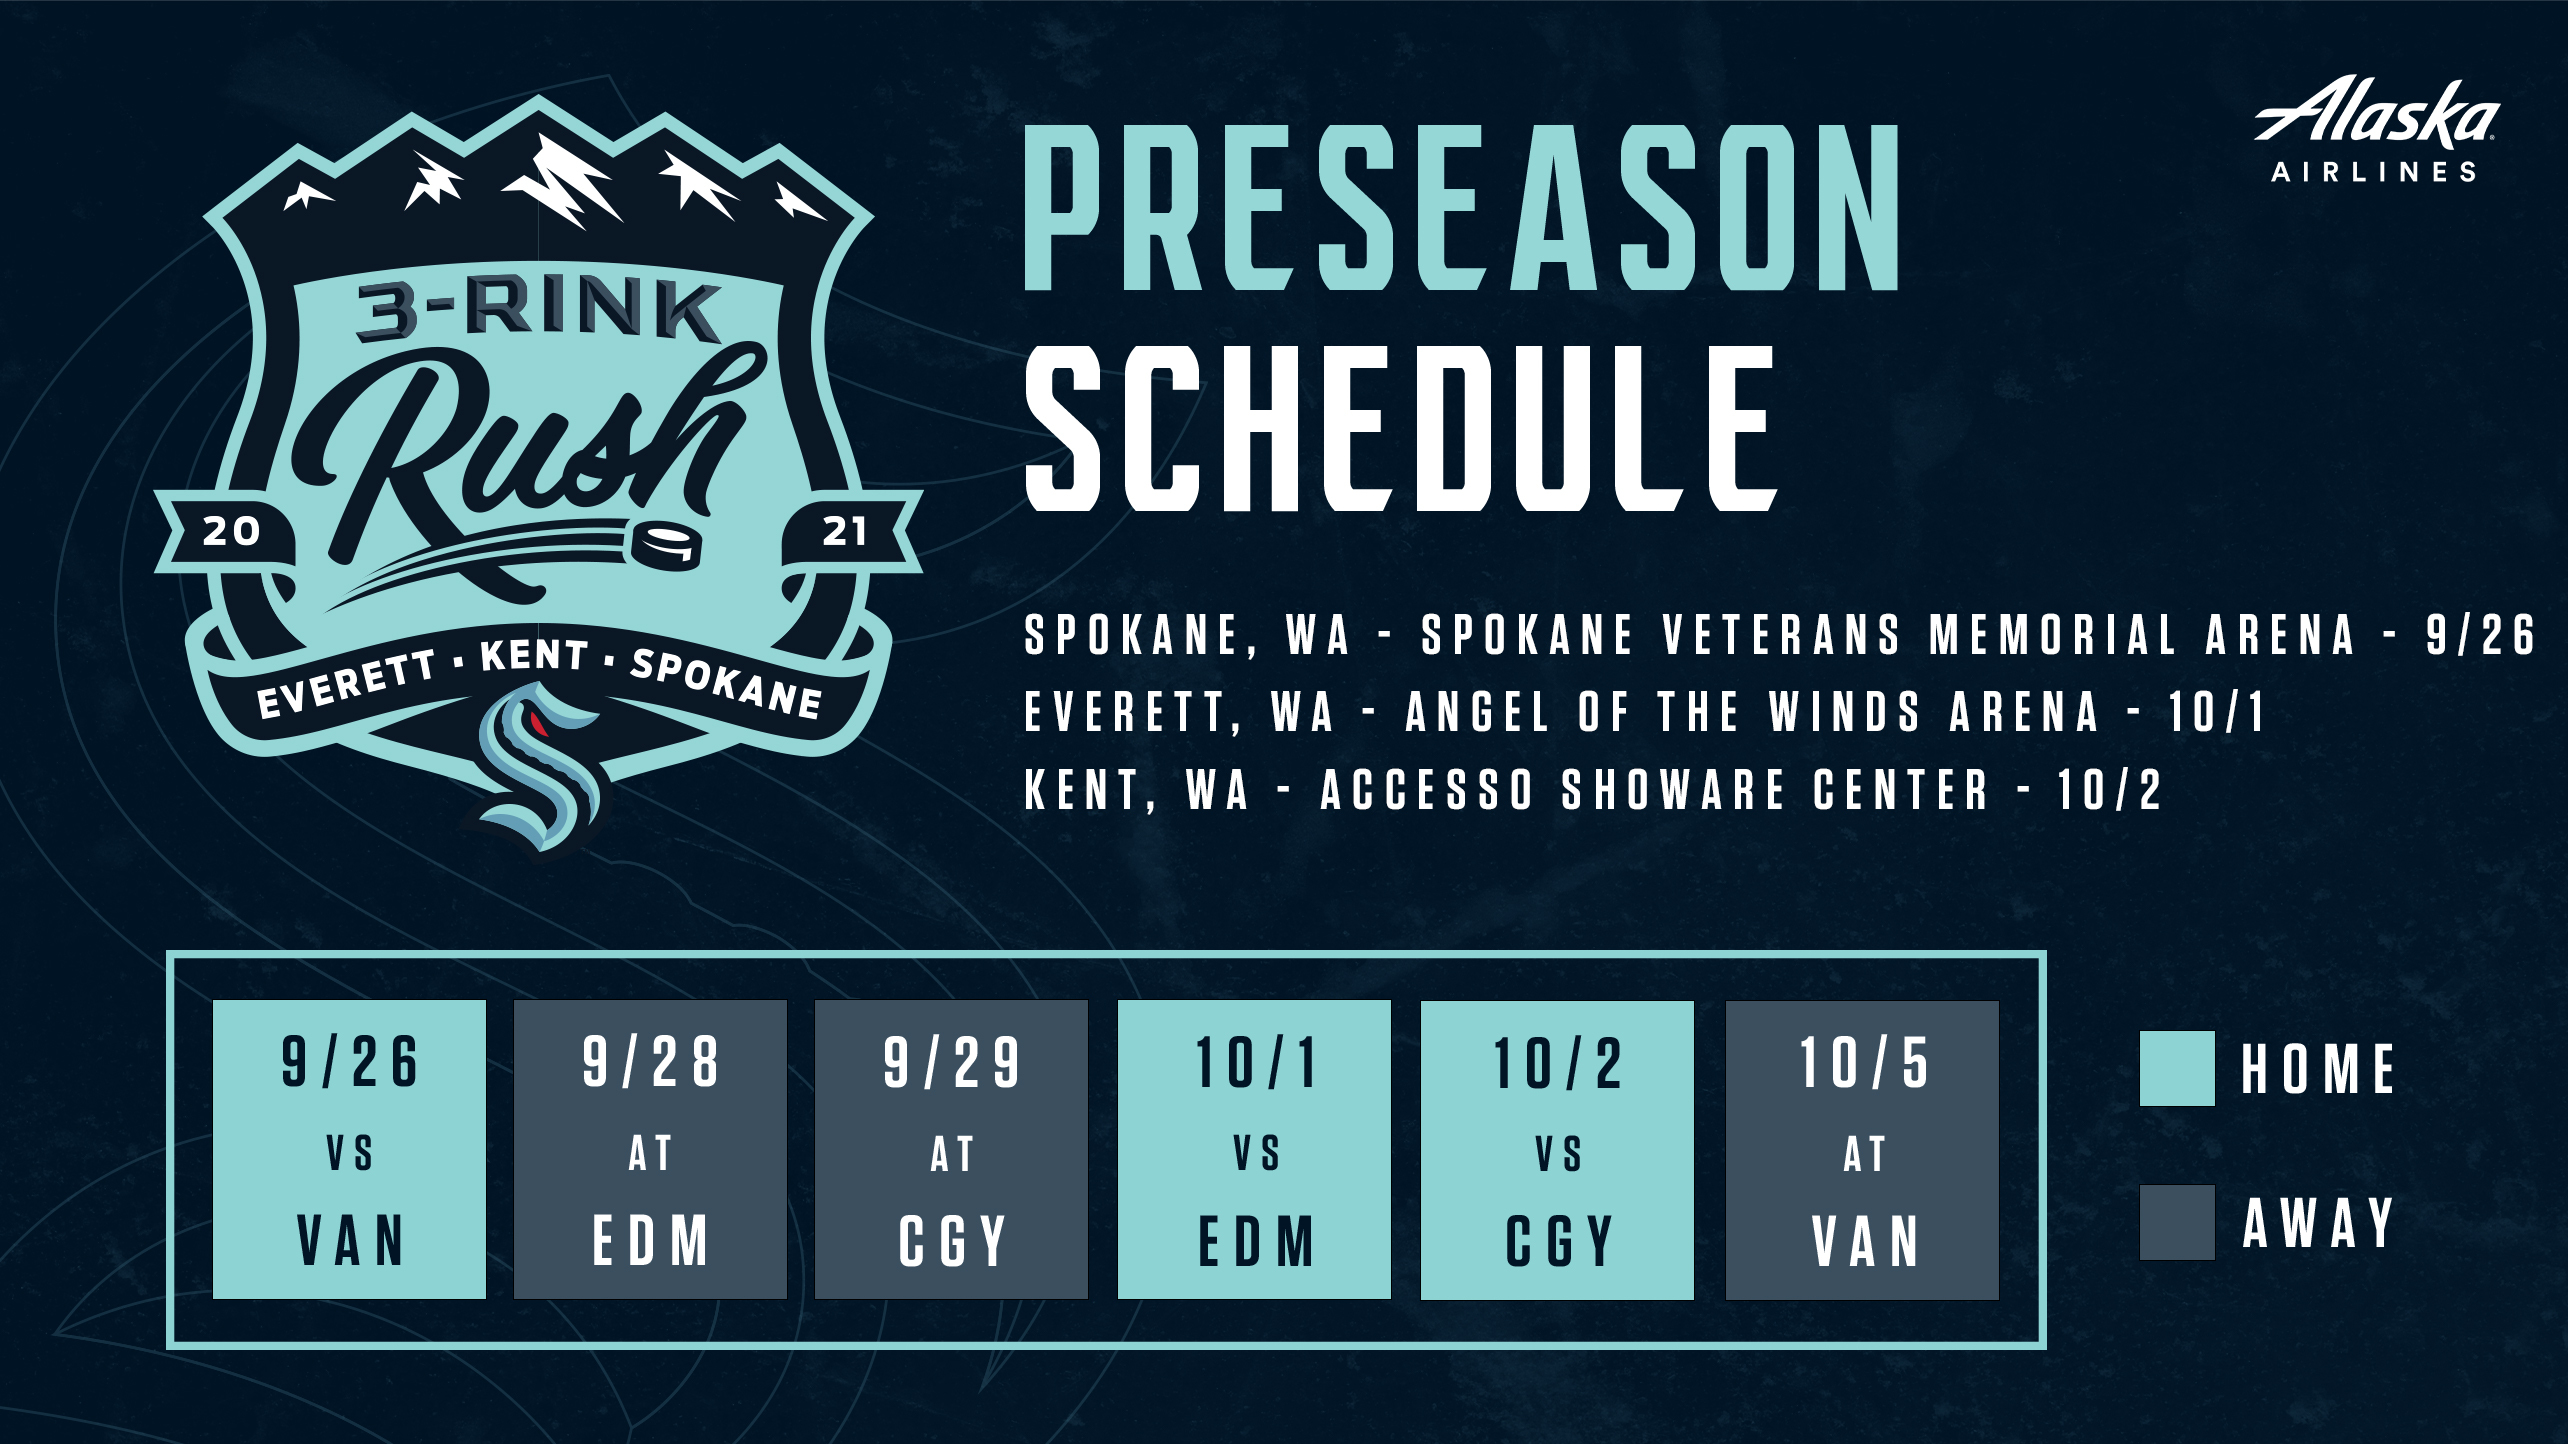 """the seattle kraken schedule with a """"3 rink rush logo"""" in the left corner.  Names of the 3 whl arenas in the middle of graphic  dates are below in blue  alaska airlines logo in the far right corner"""